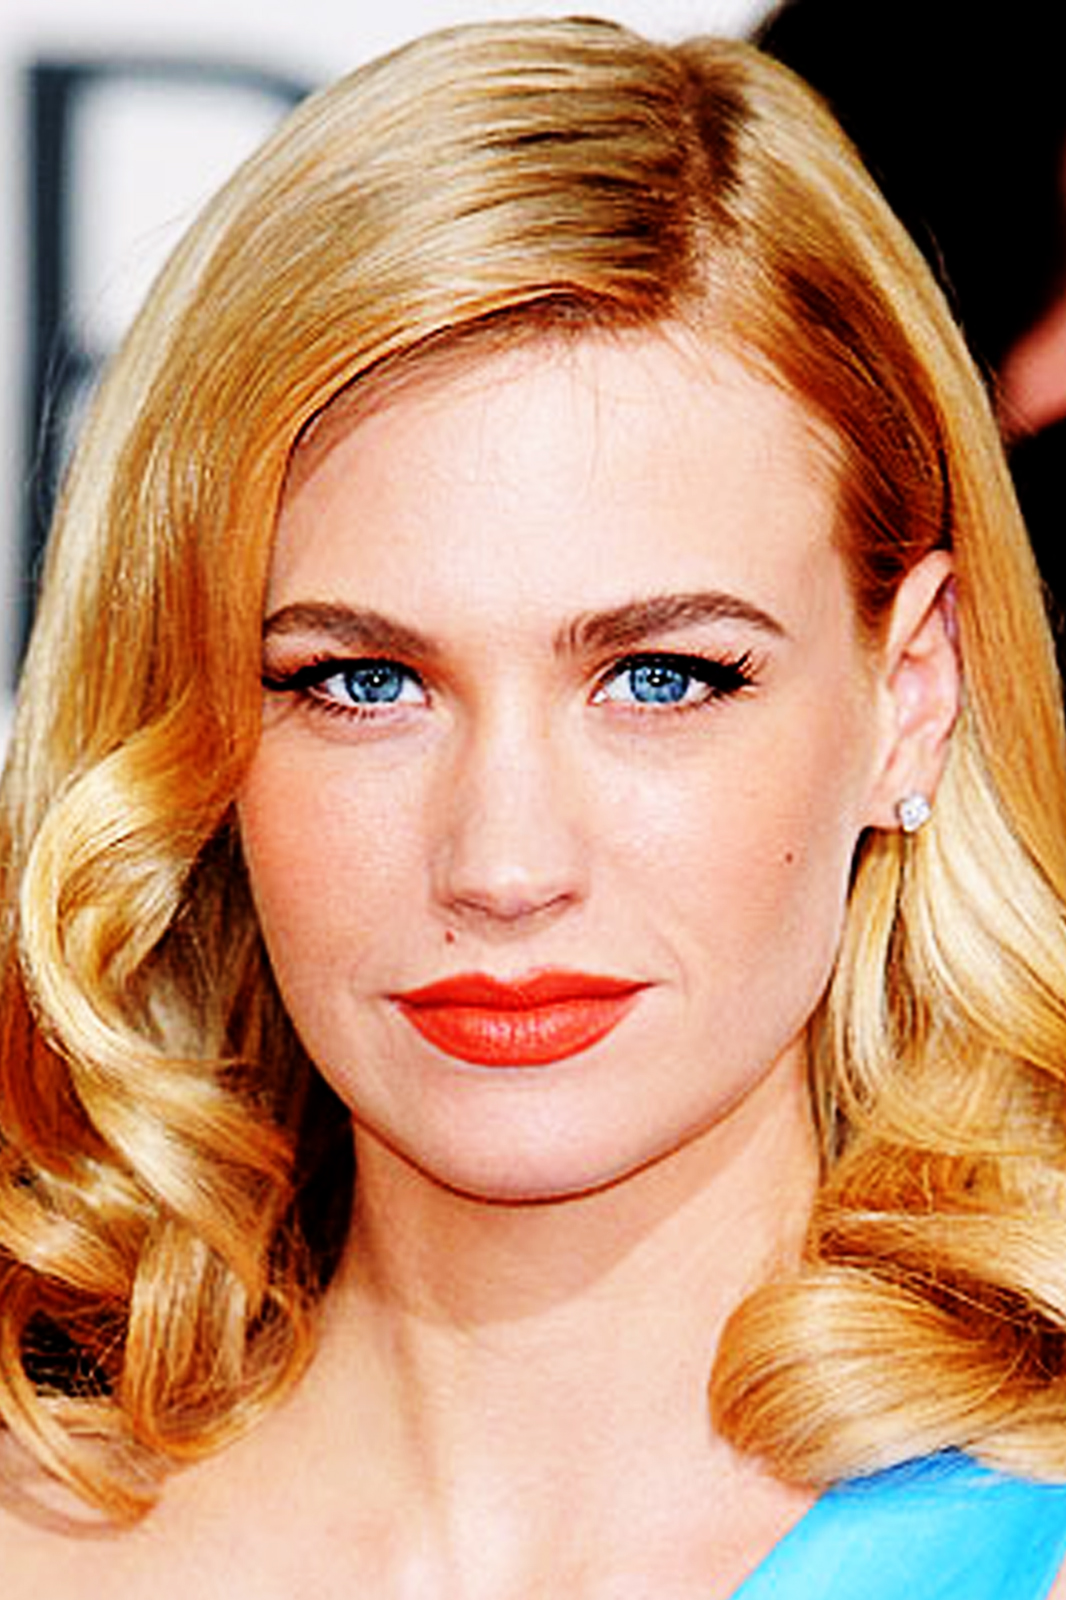 http://2.bp.blogspot.com/-MnB-Qpsezl0/T_7jFwb7BvI/AAAAAAAAAOE/dR5KOlhyMI0/s1600/January-Jones-Biography-3.jpg